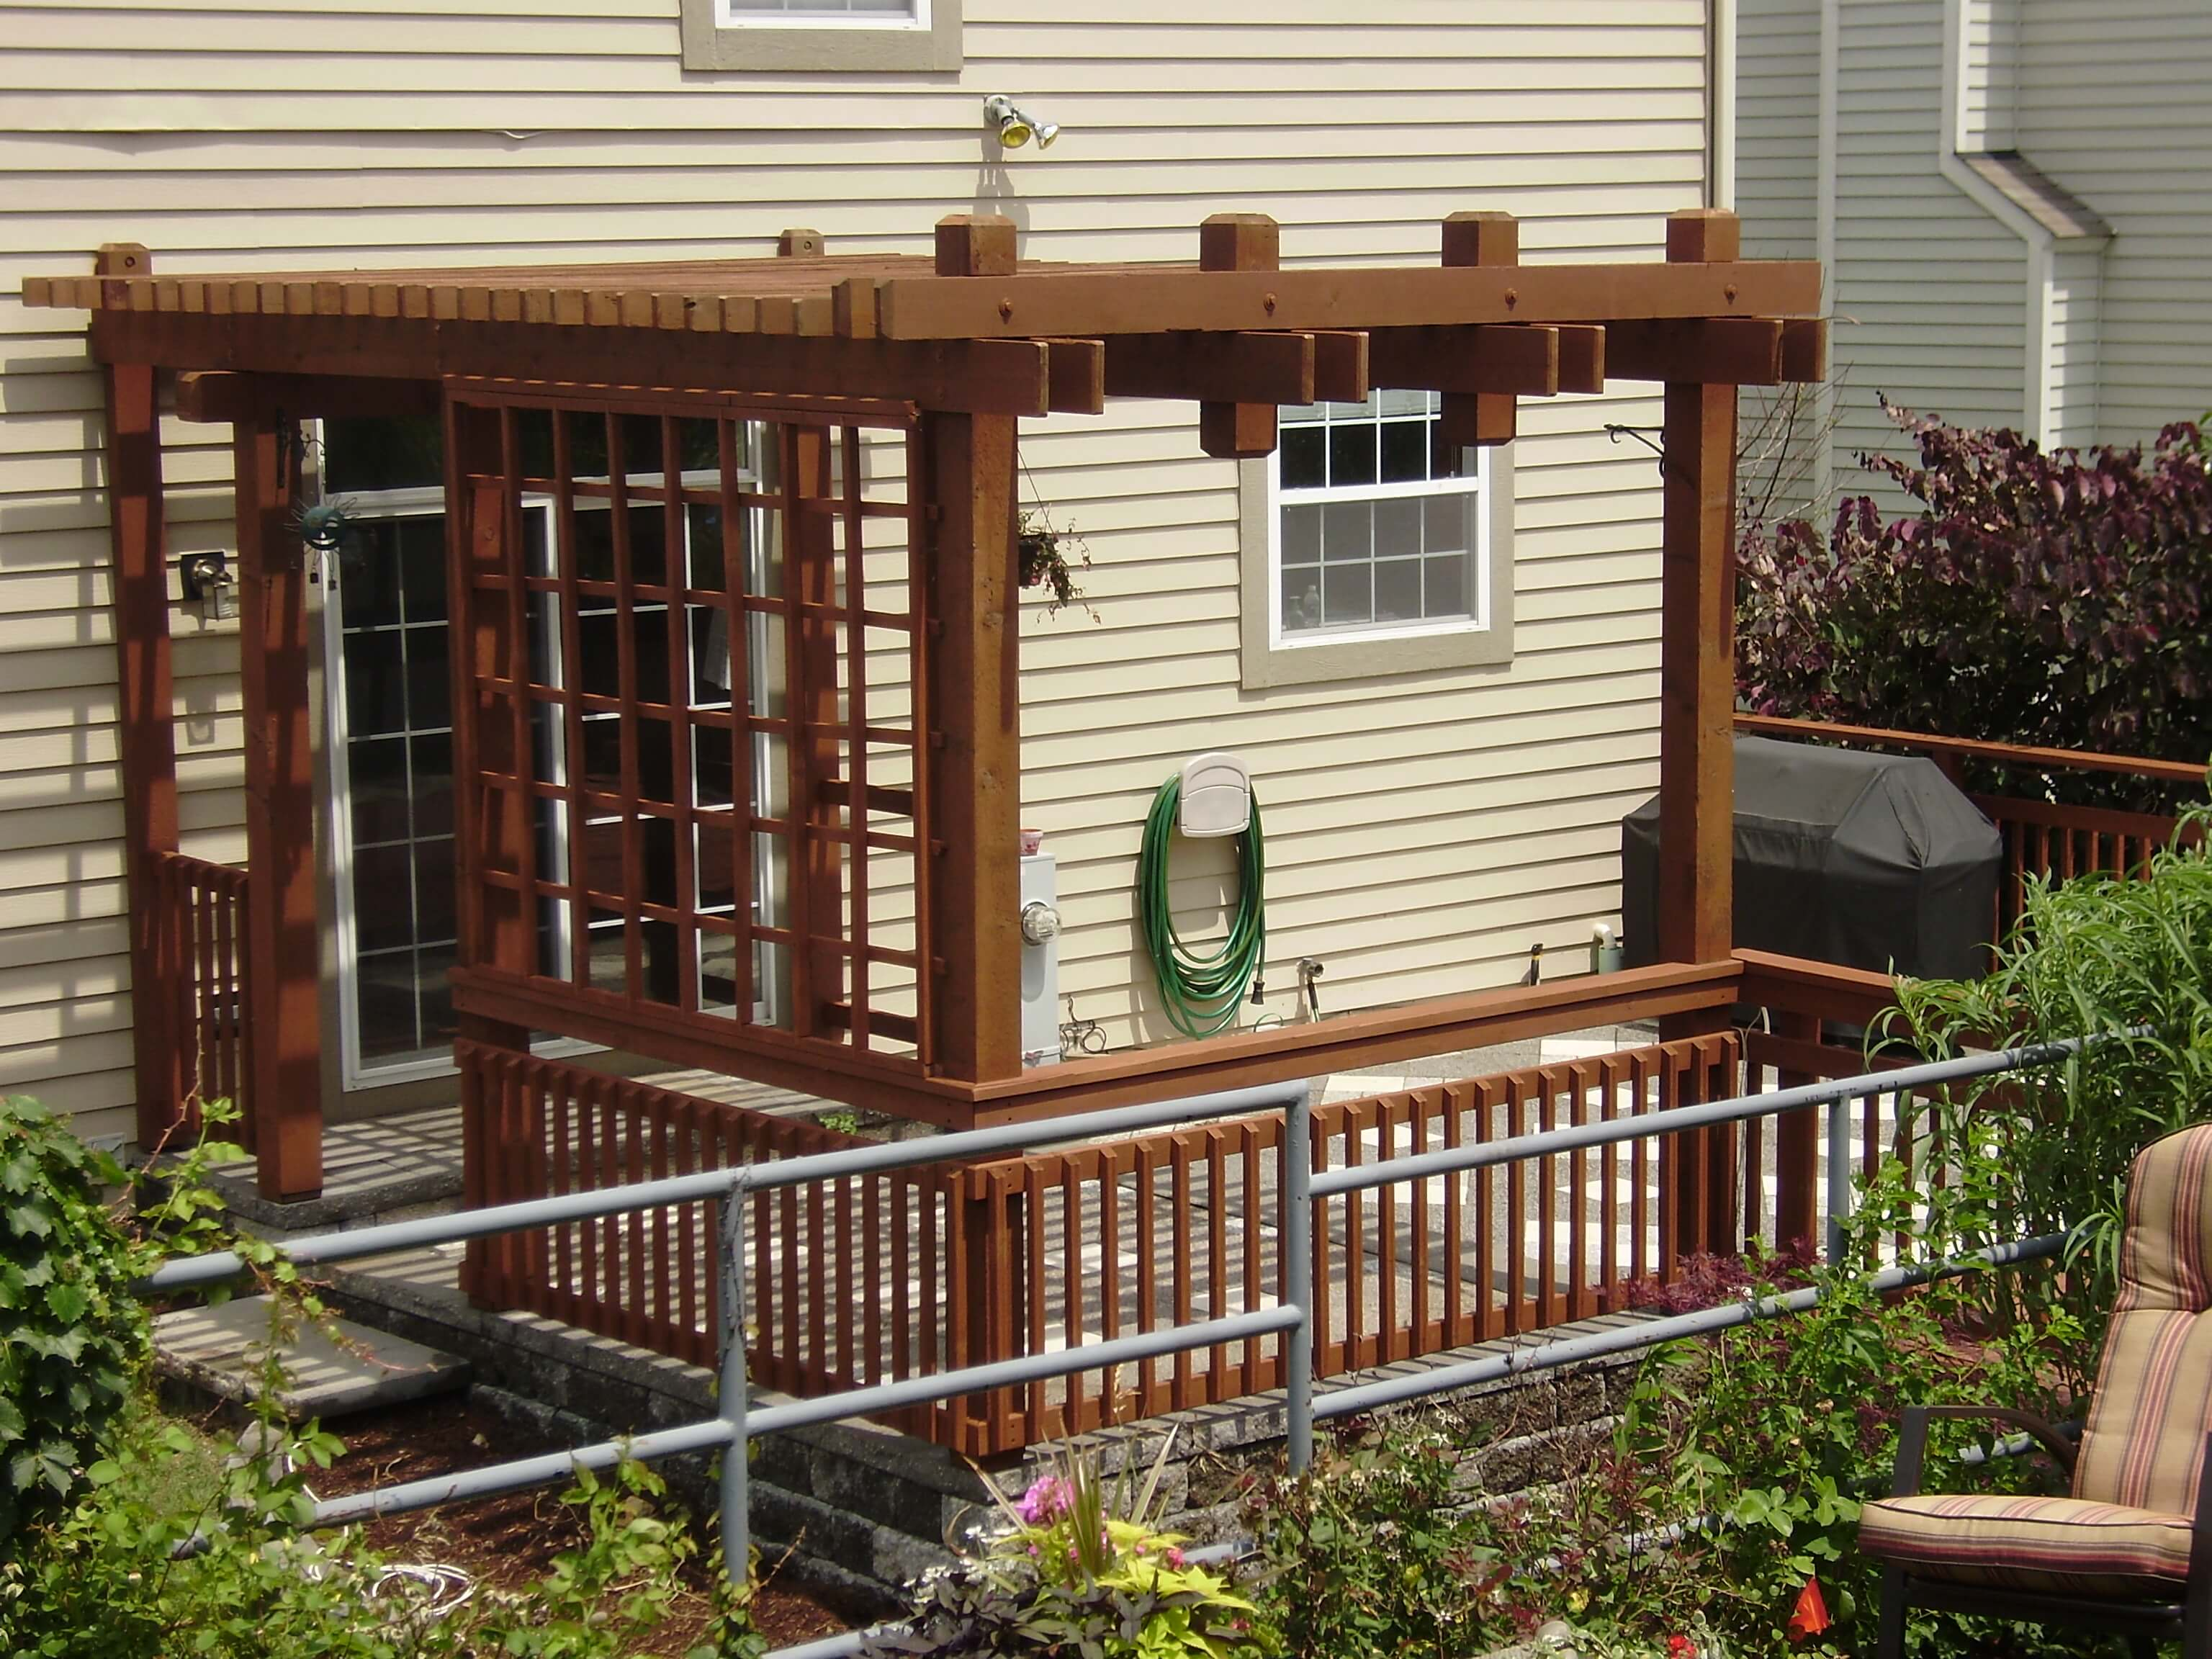 Outdoor deck and pergola that was recently treated with a transparent cedar bark stain.